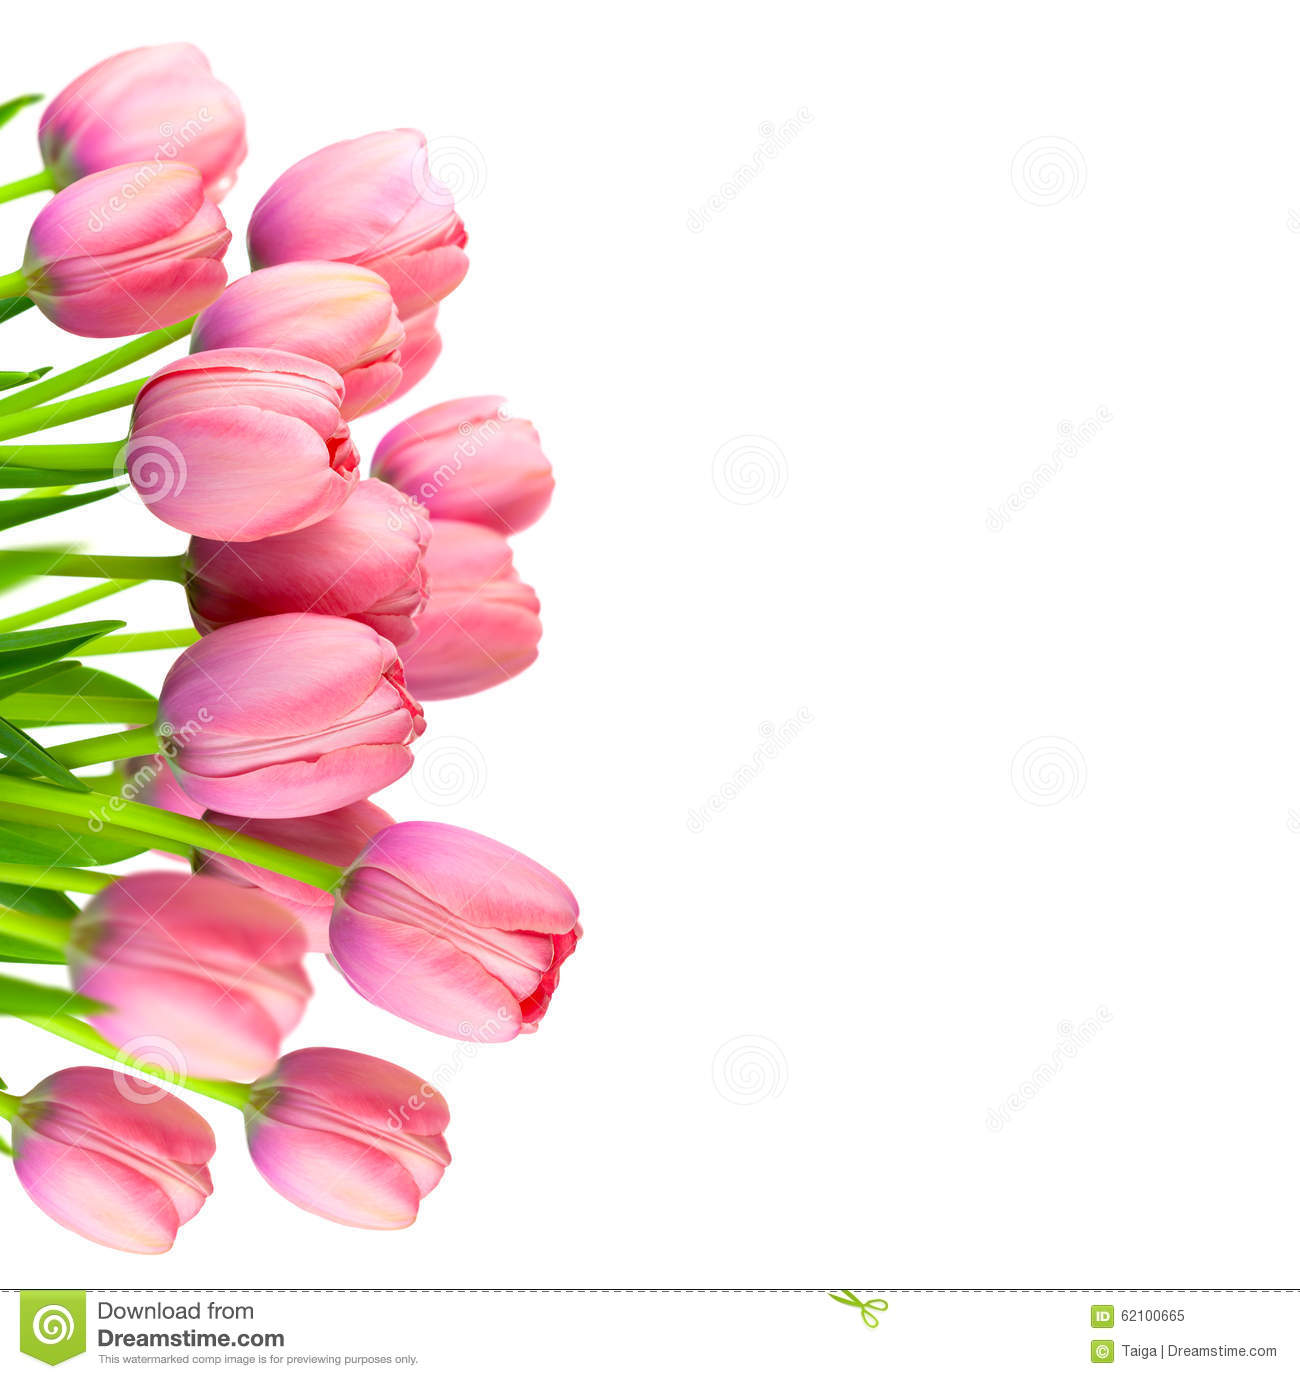 Border Of Gentle Pink Tulips Fresh Flowers On White Stock Image